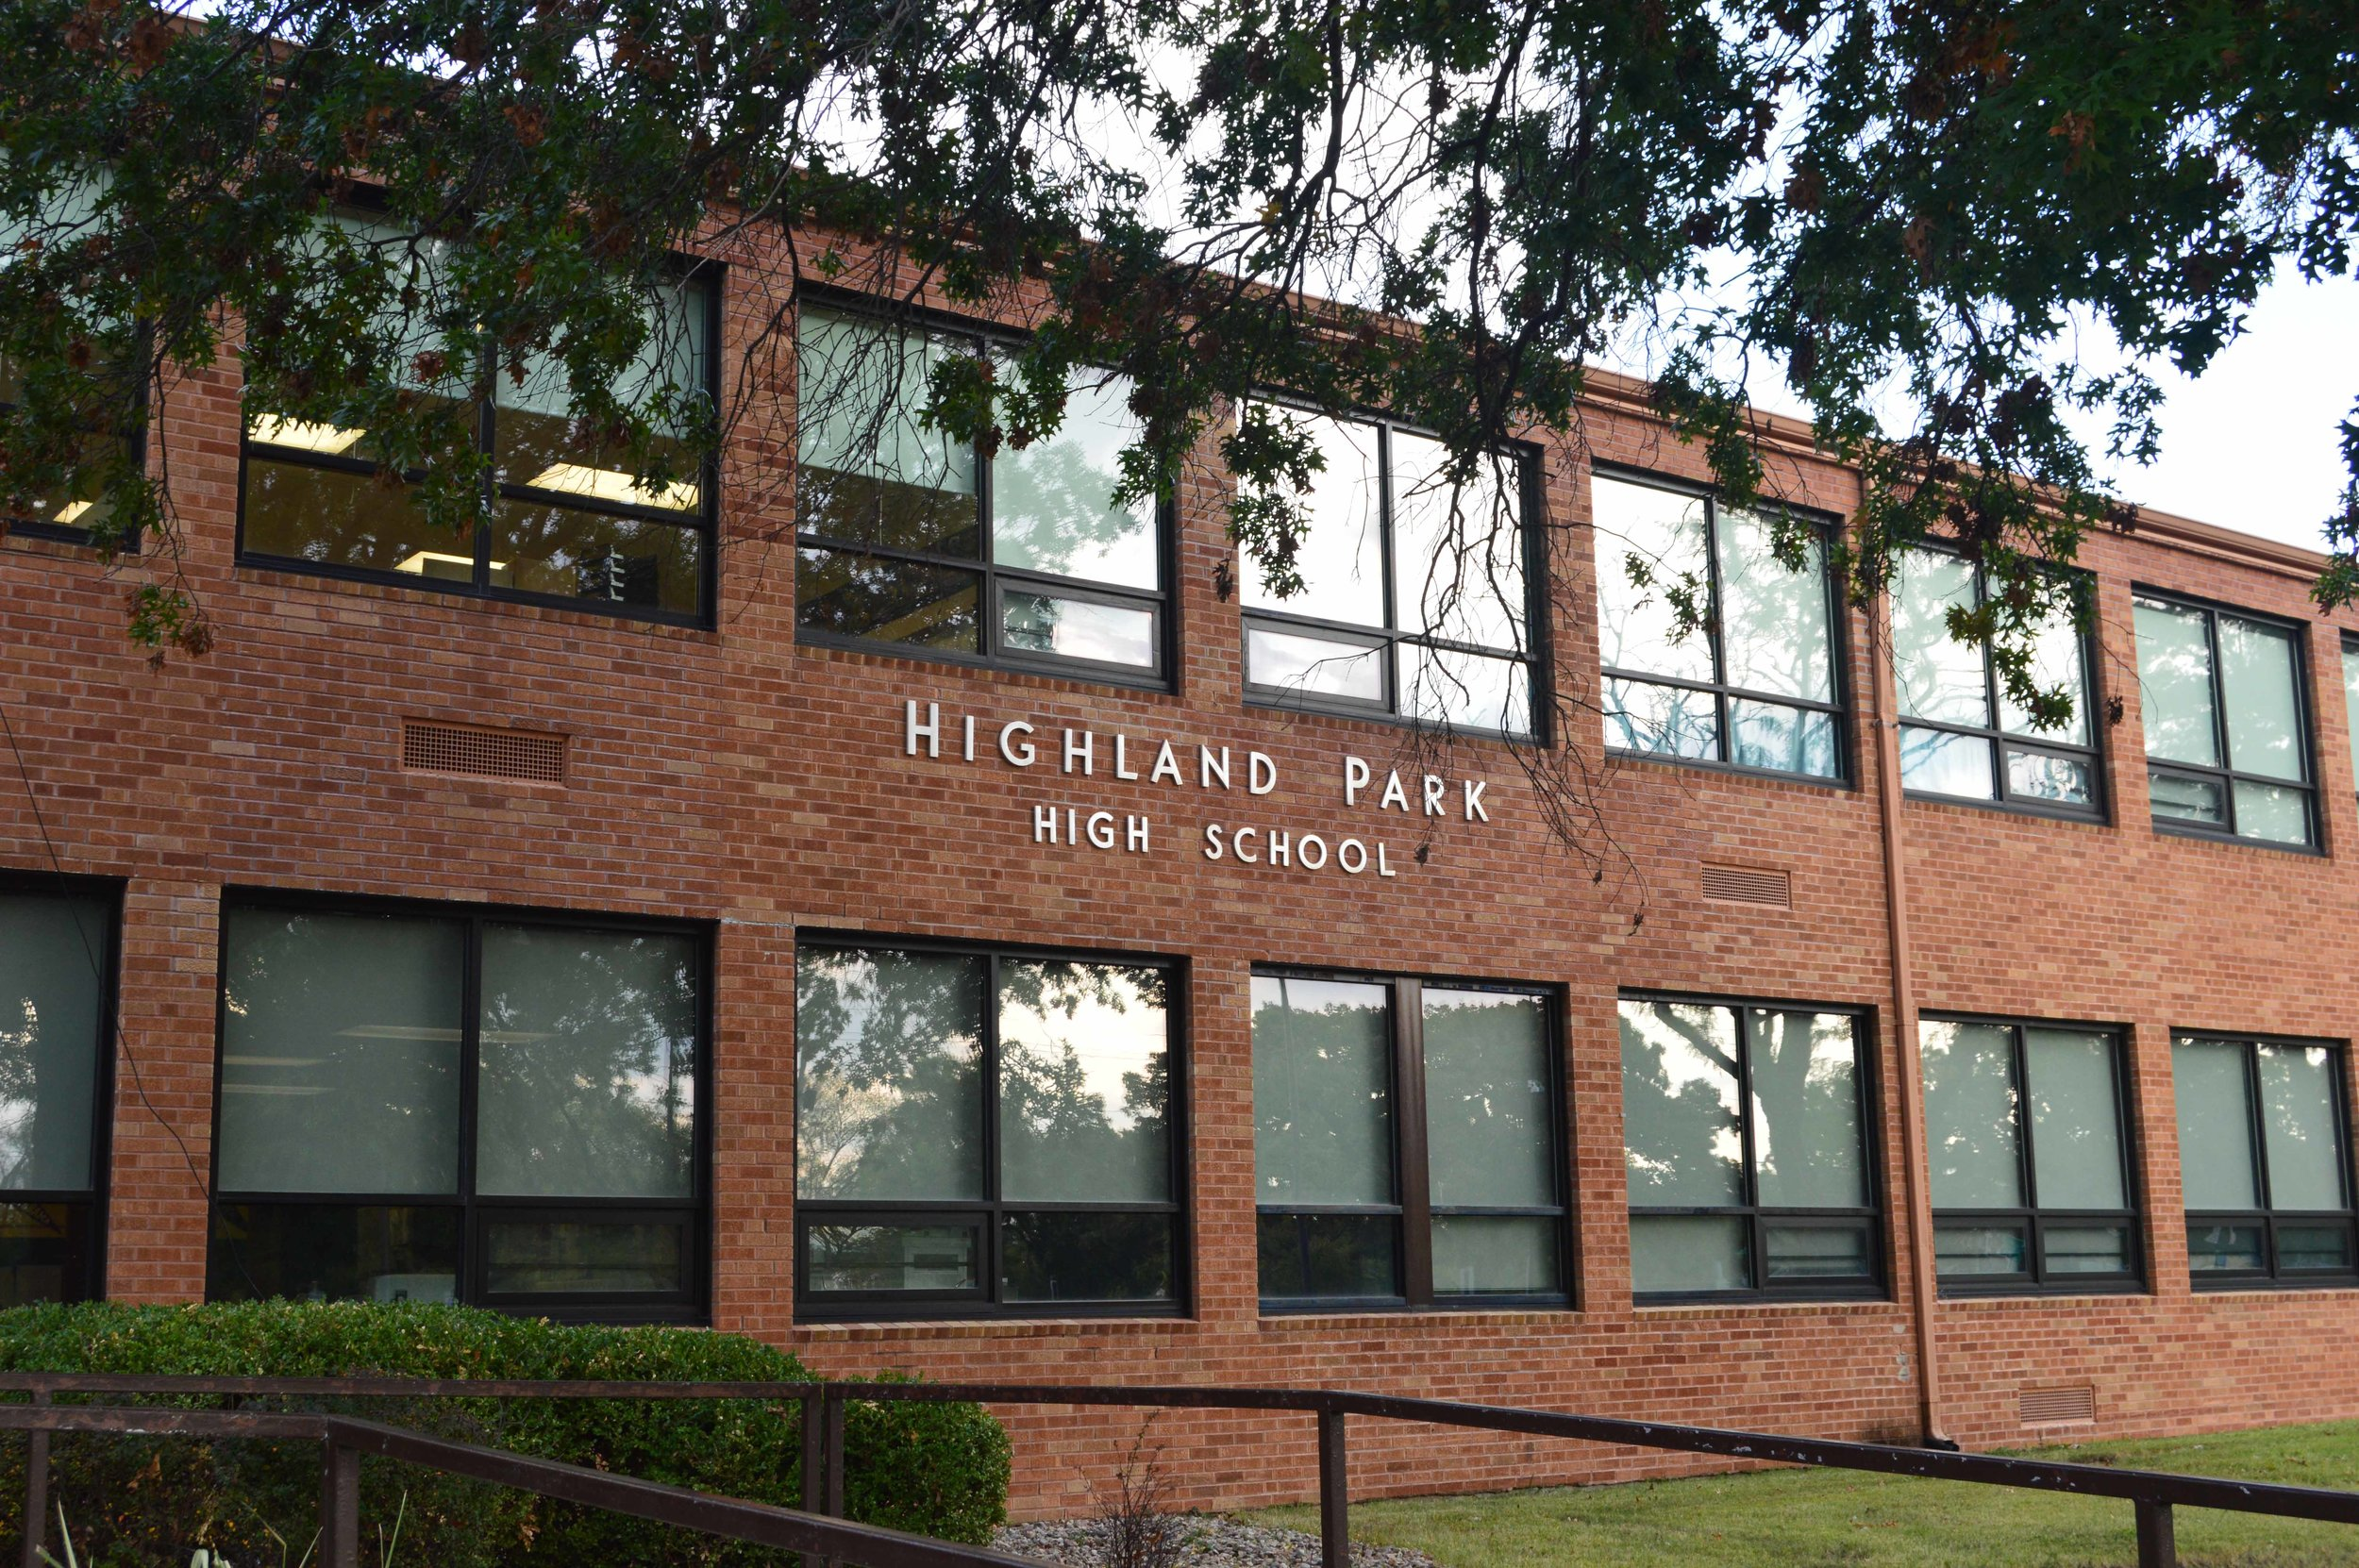 Highland Park High School Window Replacement   Client: USD 501 Topeka Public Schools Architect: USD 501 Topeka Public Schools